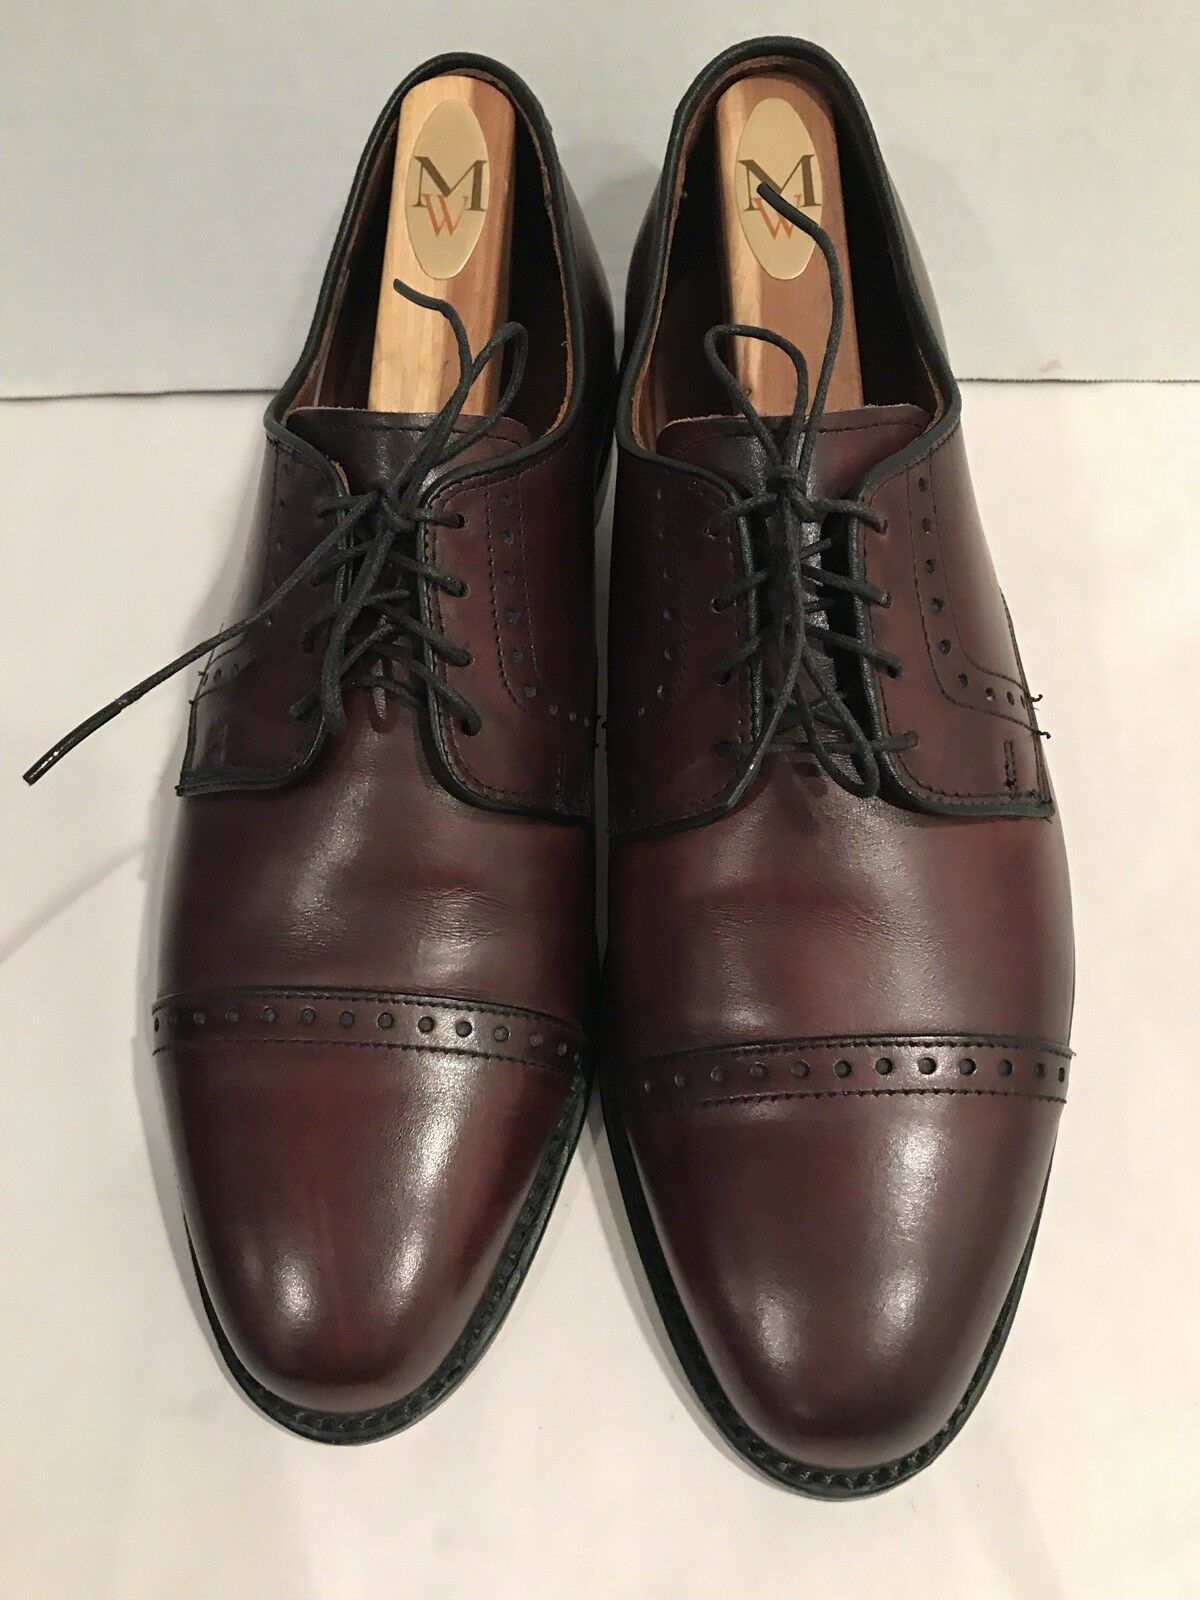 ALLEN EDMONDS Uomo Clifton Burgundy Burnish Pelle Blucher Shoes Sz 8 8 Sz D 95a2a3